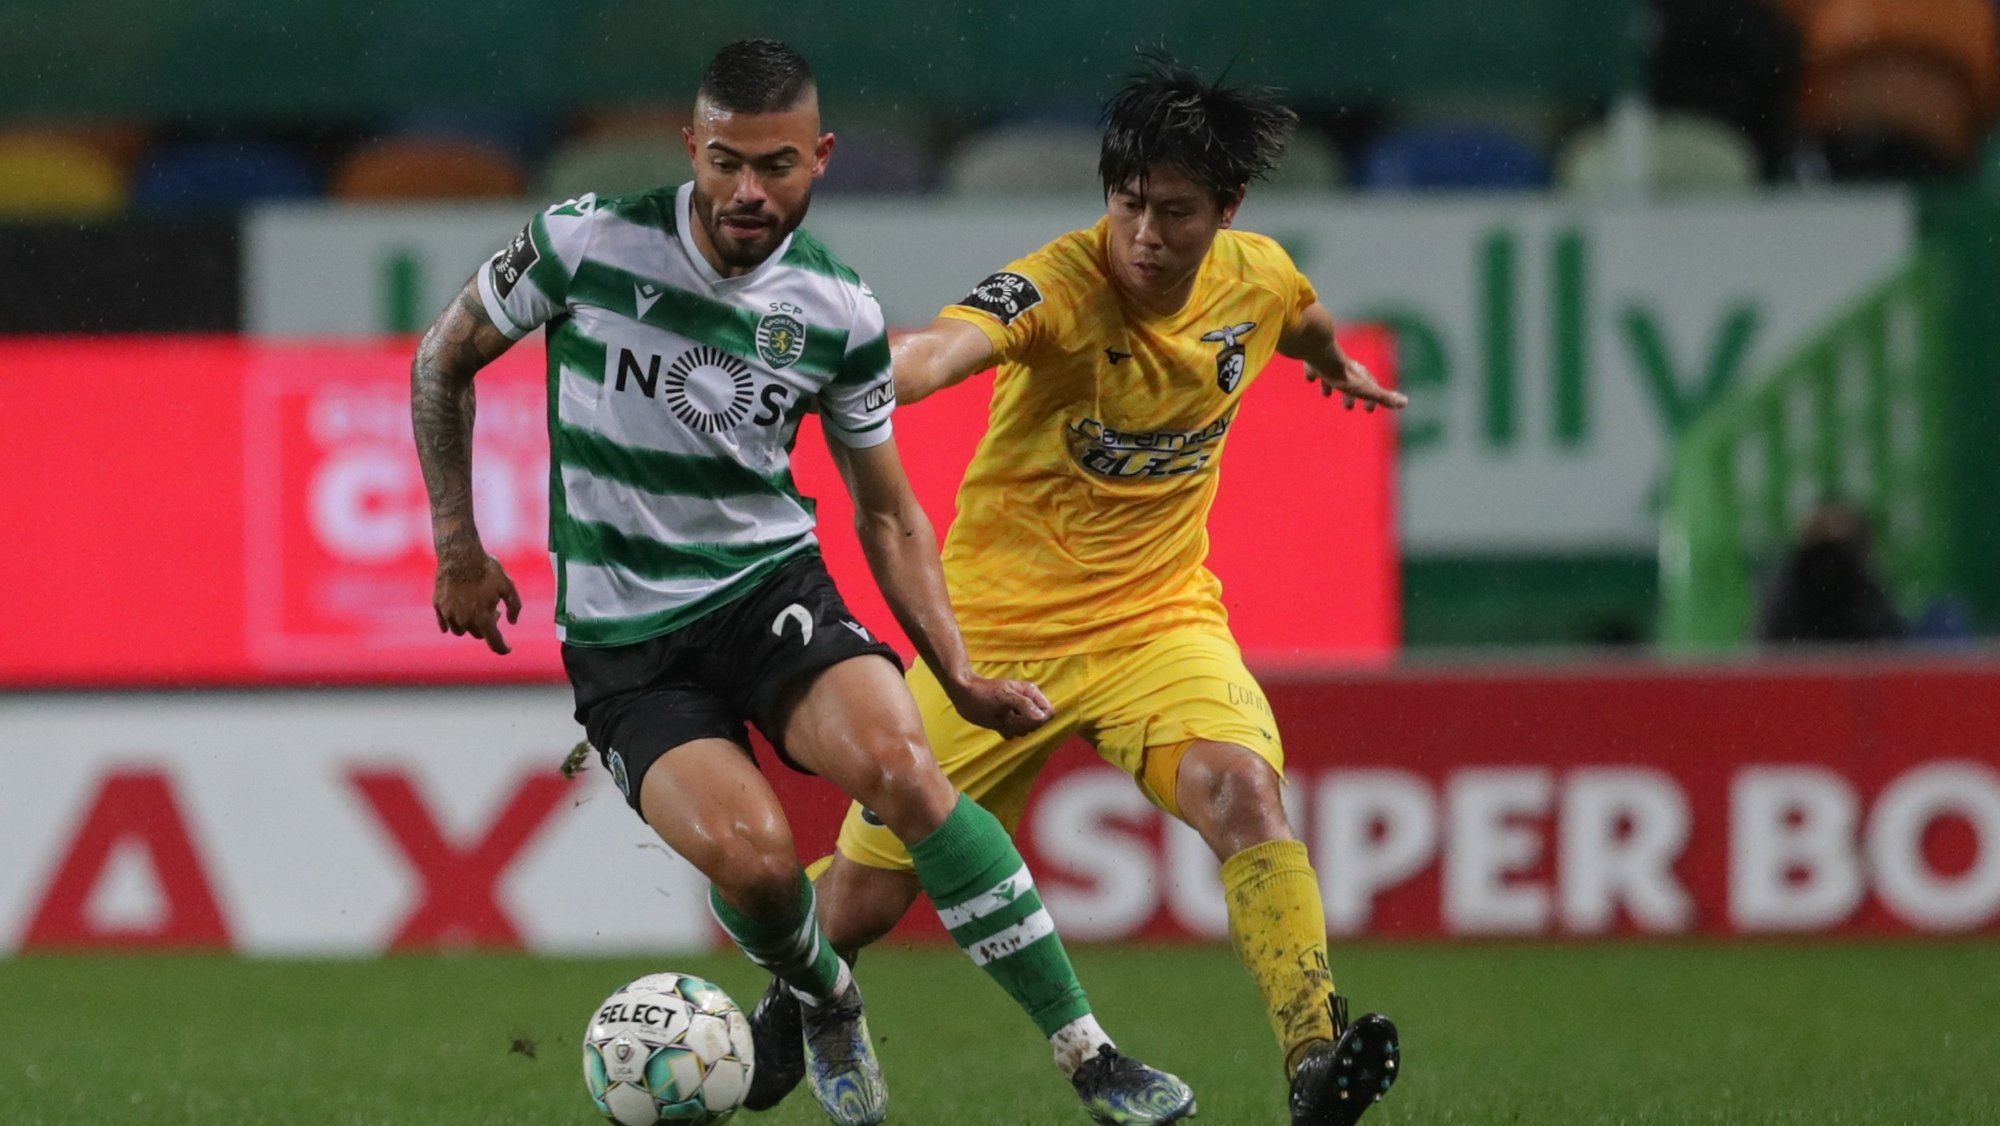 Sporting's player Bruno Tabata (L) in action against Portimonense's player Koki Anzai (R) during the Portuguese First League soccer match, Sporting vs Portimonense, held at Alvalade stadium in Lisbon, Portugal, 20 February 2021. TIAGO PETINGA/LUSA